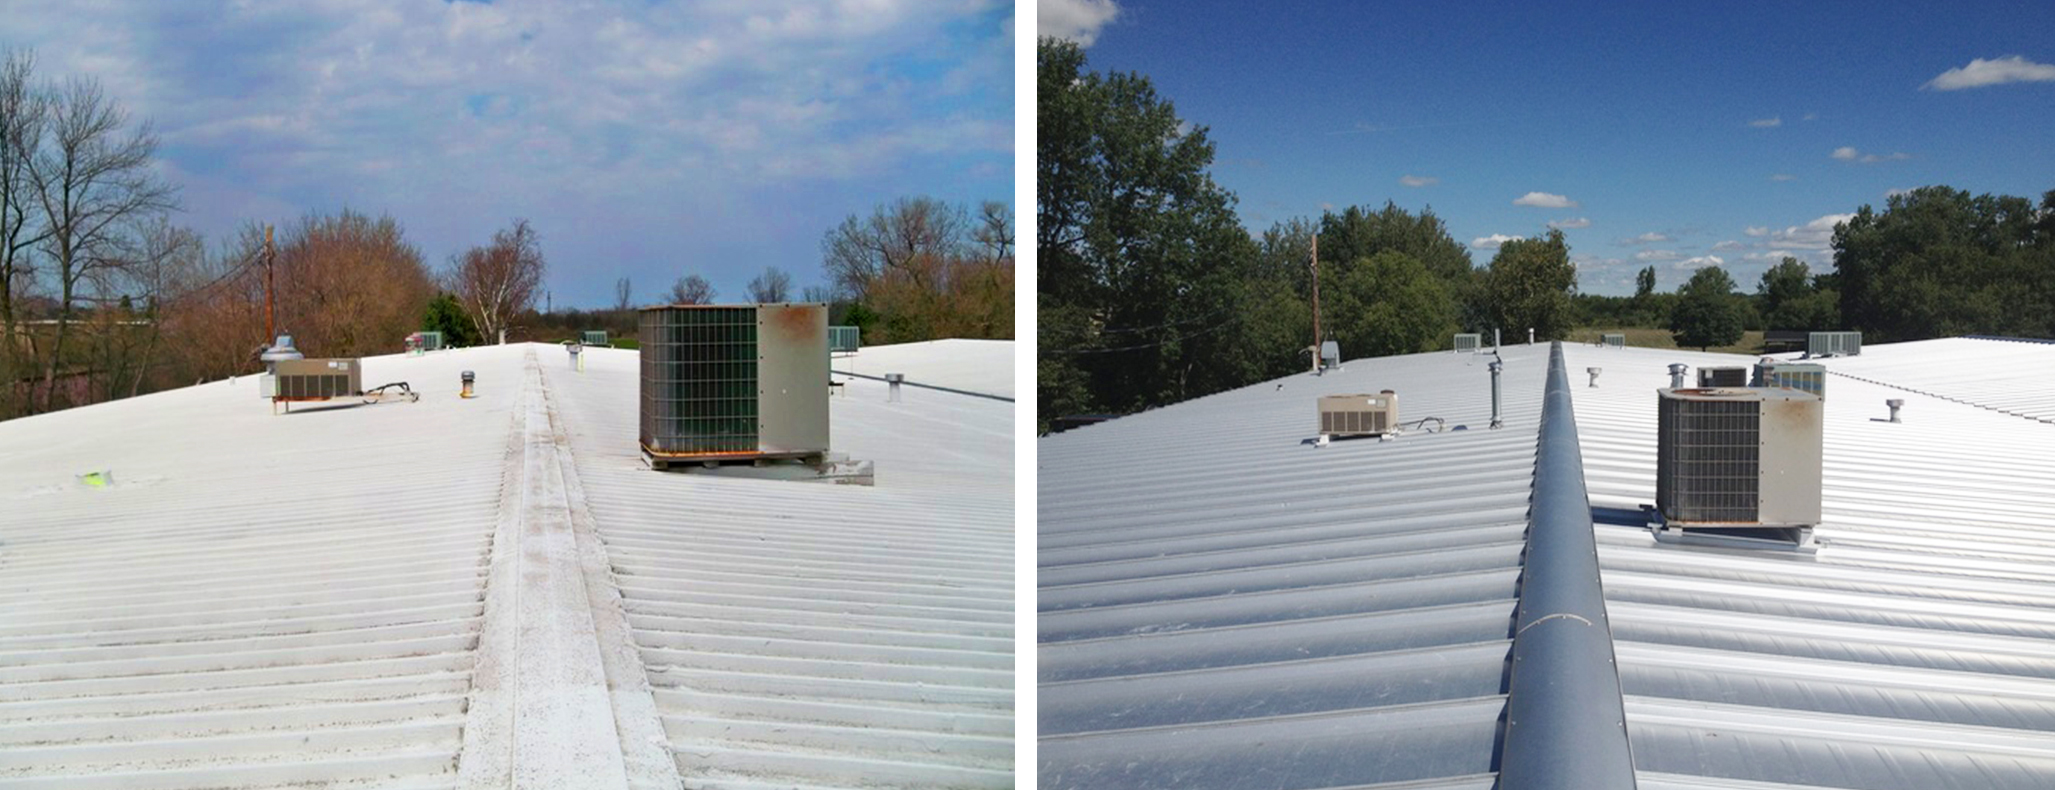 Cost of Roof Maintenance: Repair vs. Retrofit vs. New Replacement